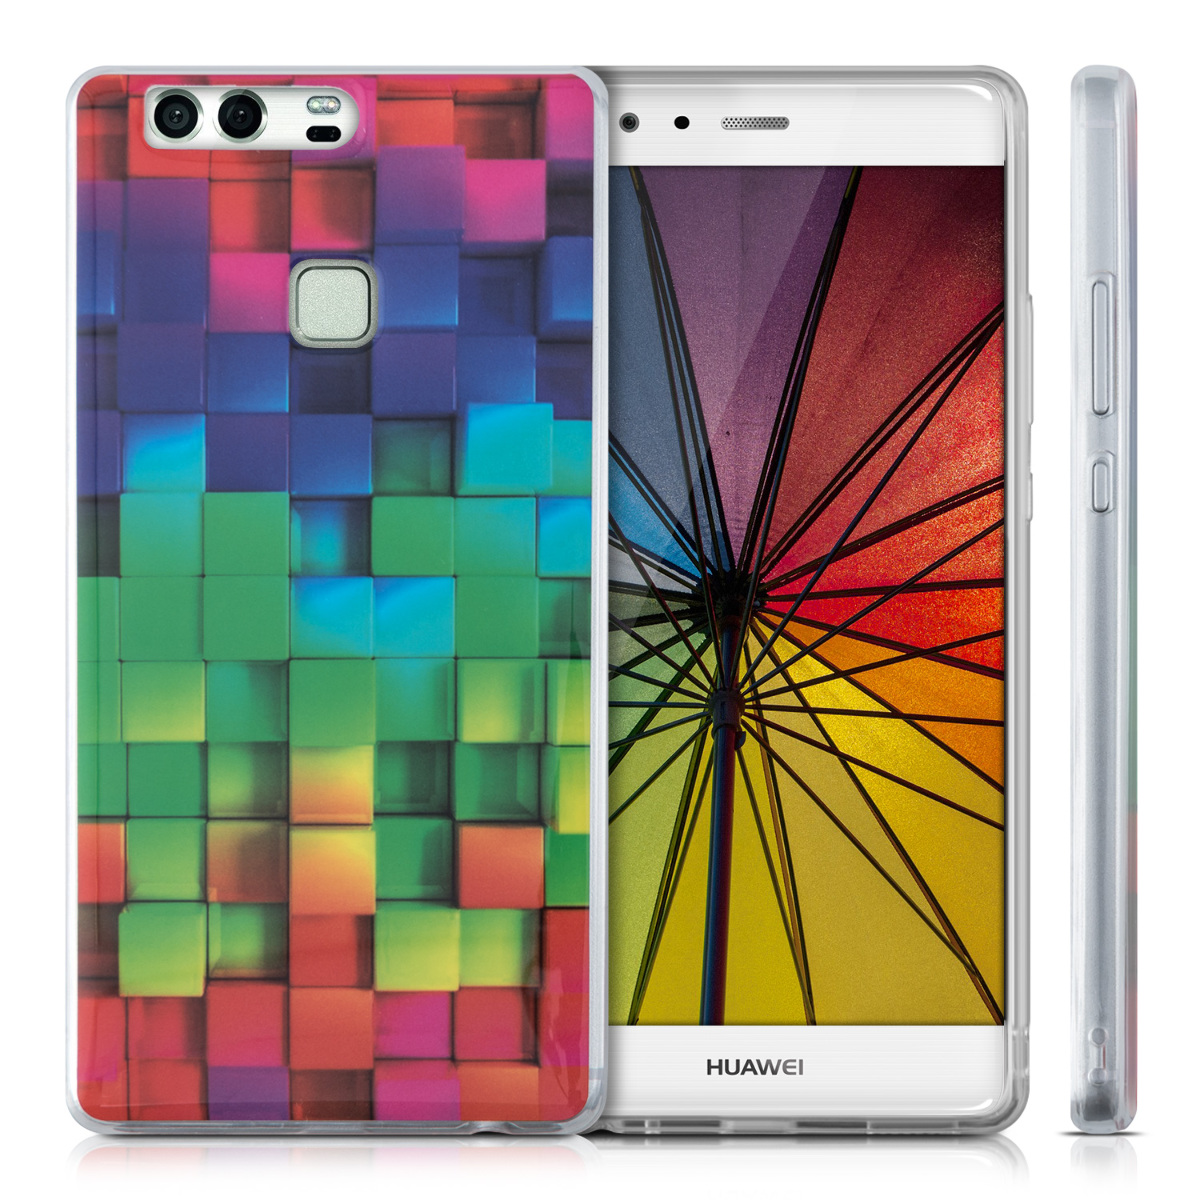 kwmobile-COQUE-POUR-HUAWEI-P9-PLUS-HOUSSE-HOUSSE-SILICONE-PROTECTION